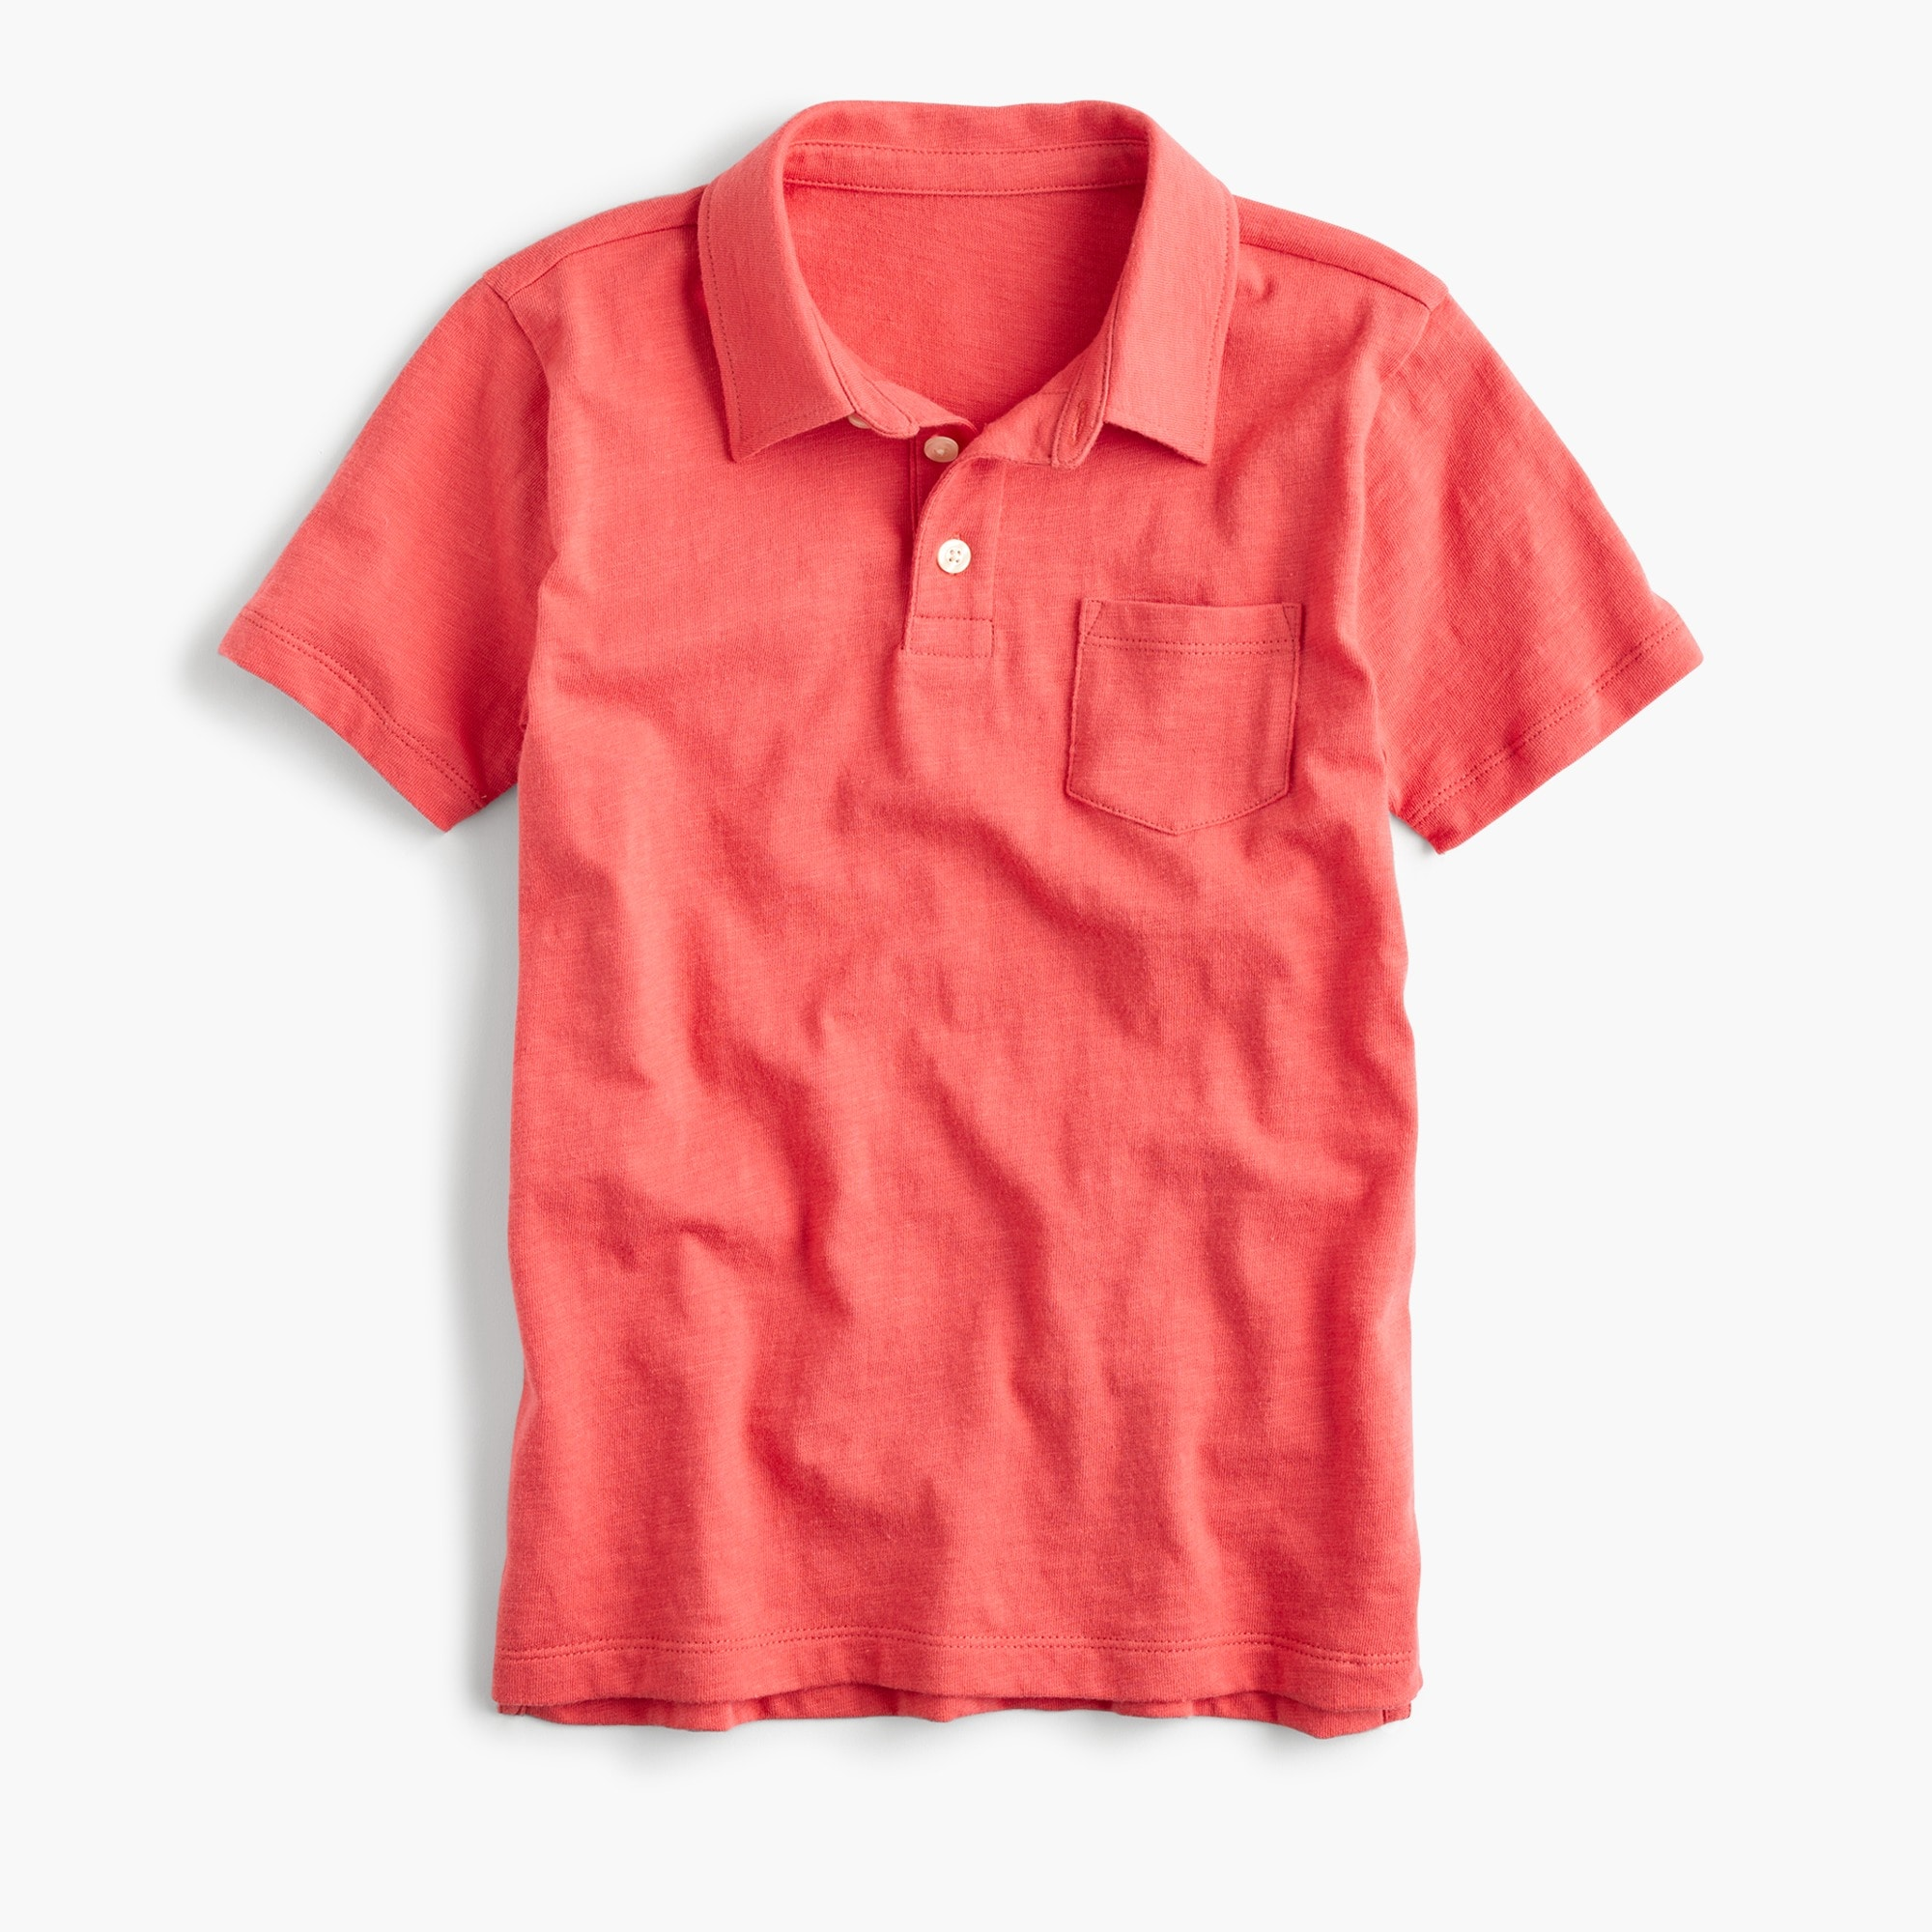 Boys' slub cotton polo shirt boy t-shirts & polos c